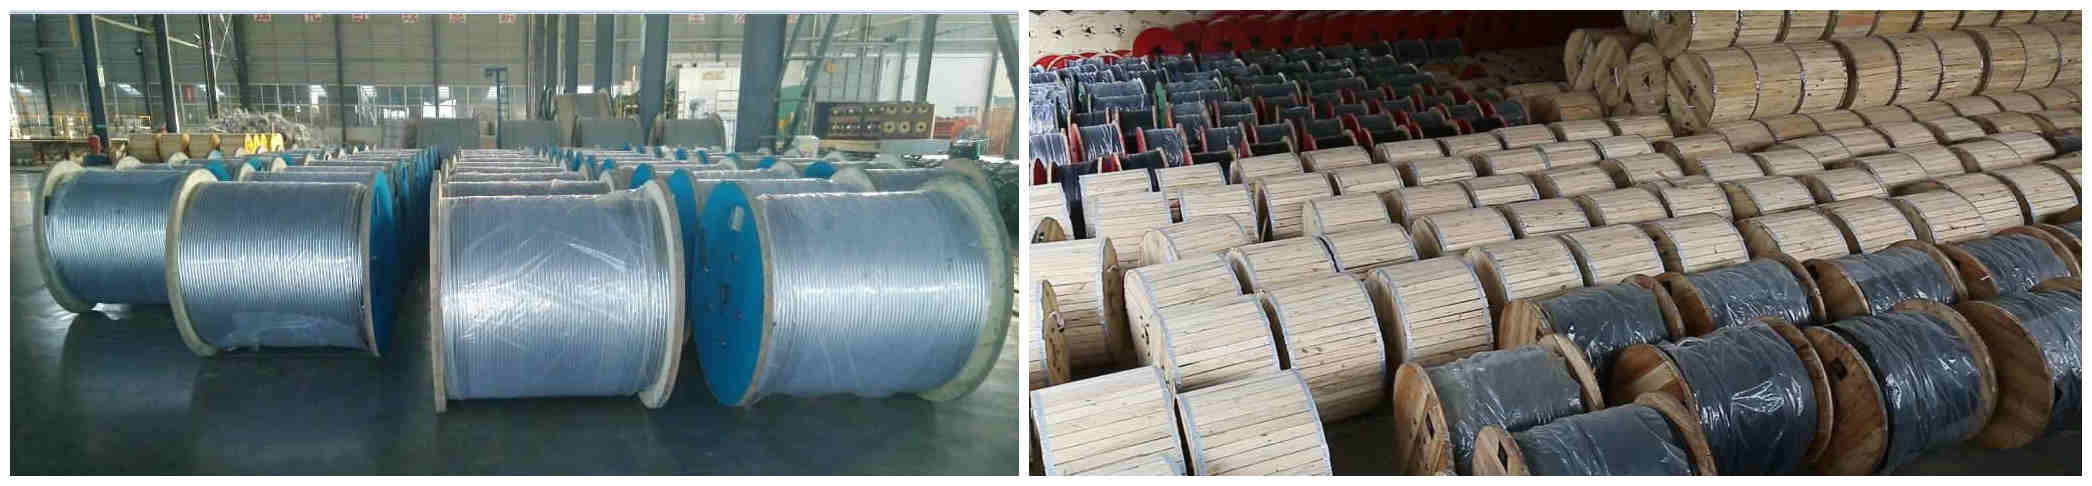 Cable Triplex Aluminio and Triplex Wire for Sale-Huadong Cable Group